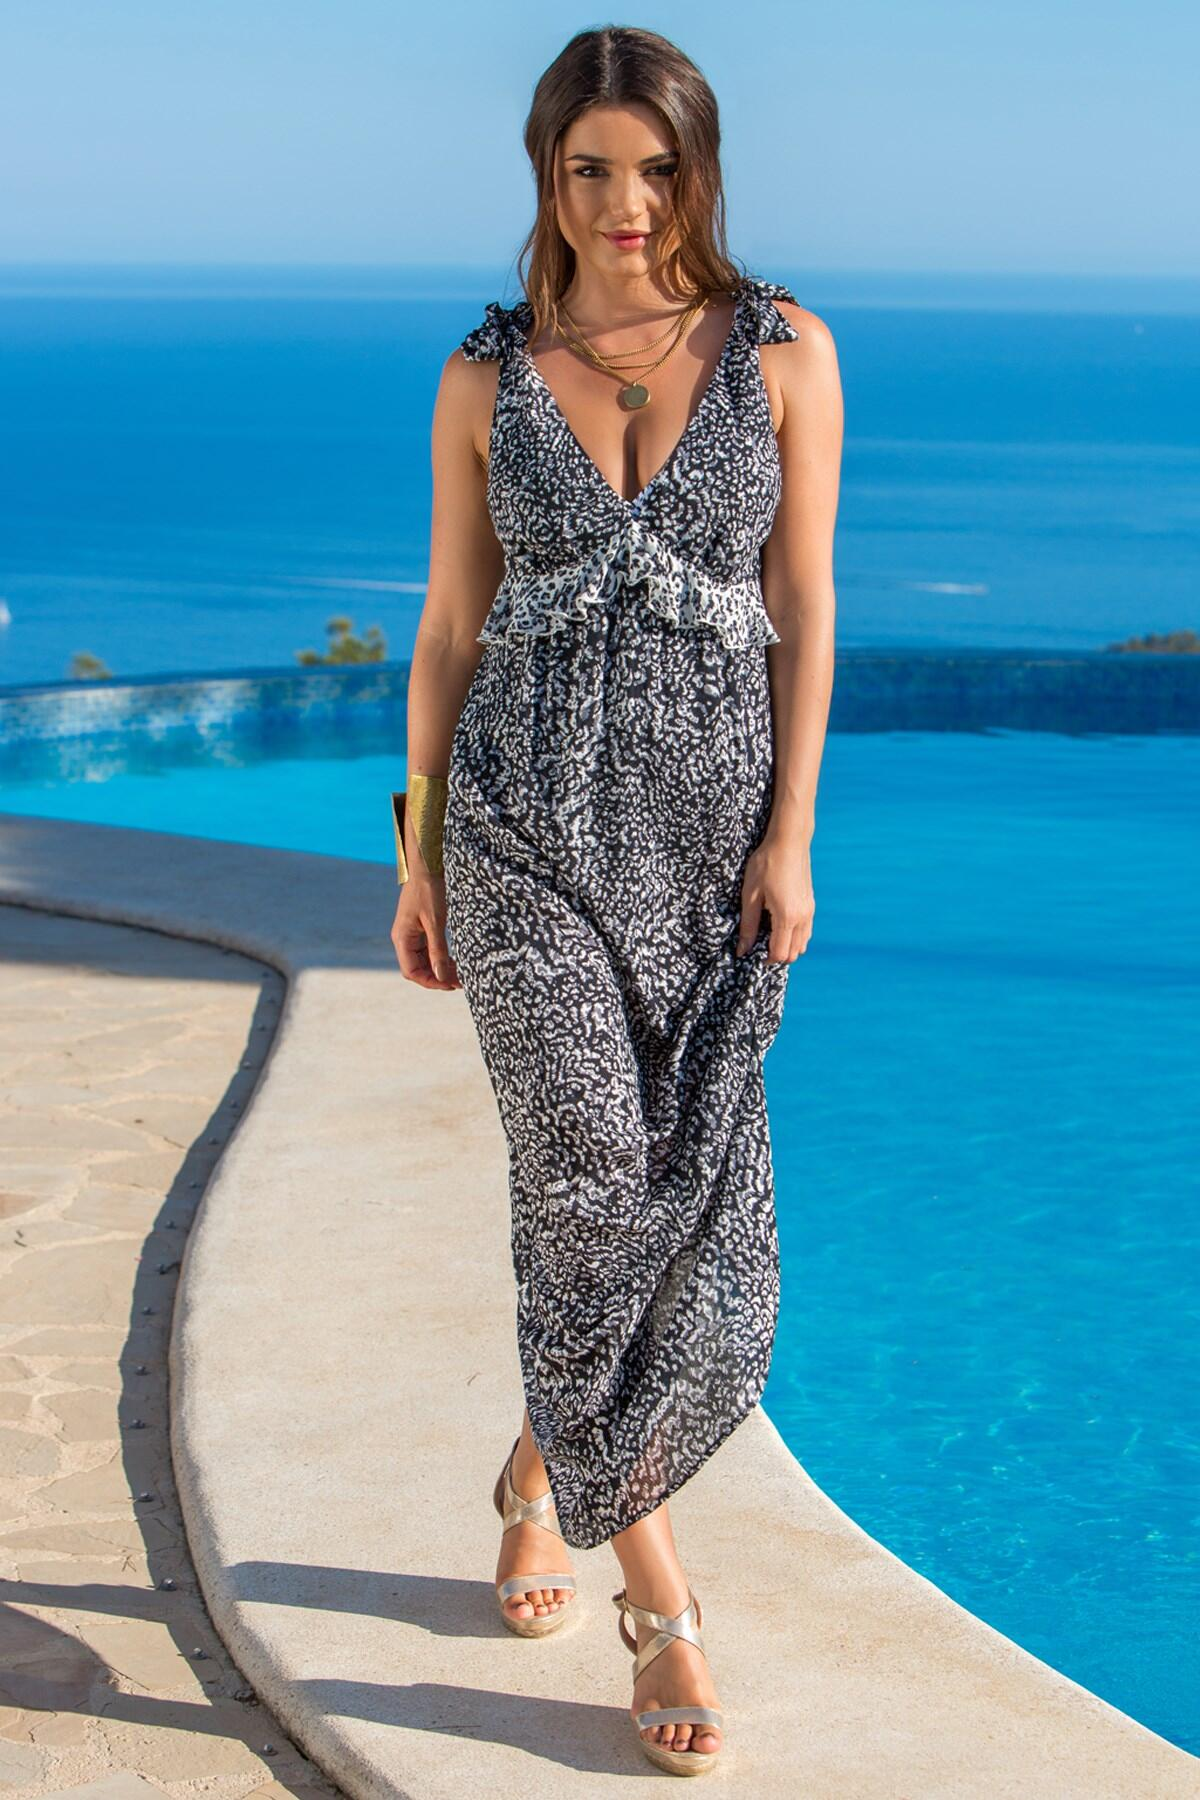 Mixology Maxi Dress - Black/White